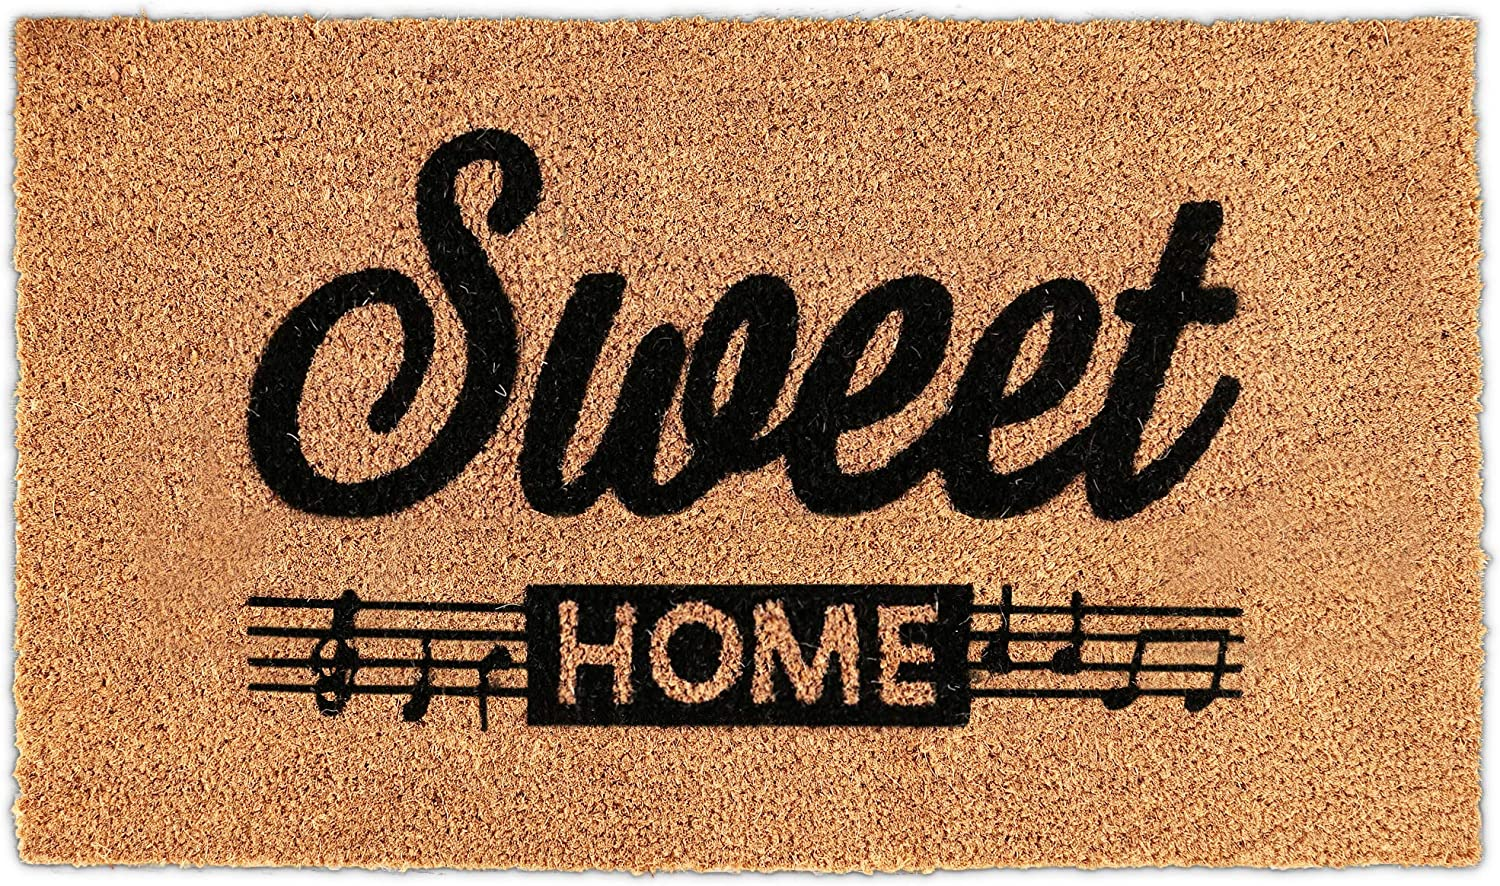 H.VERSAILTEX Doormats for Outside Entry | Natural Coco Coir Mats for Front Door | Premium Durable Outside Door Mats Heavy-Duty with Rubber Backing, Easily Captures Moisture / Dirt, 17